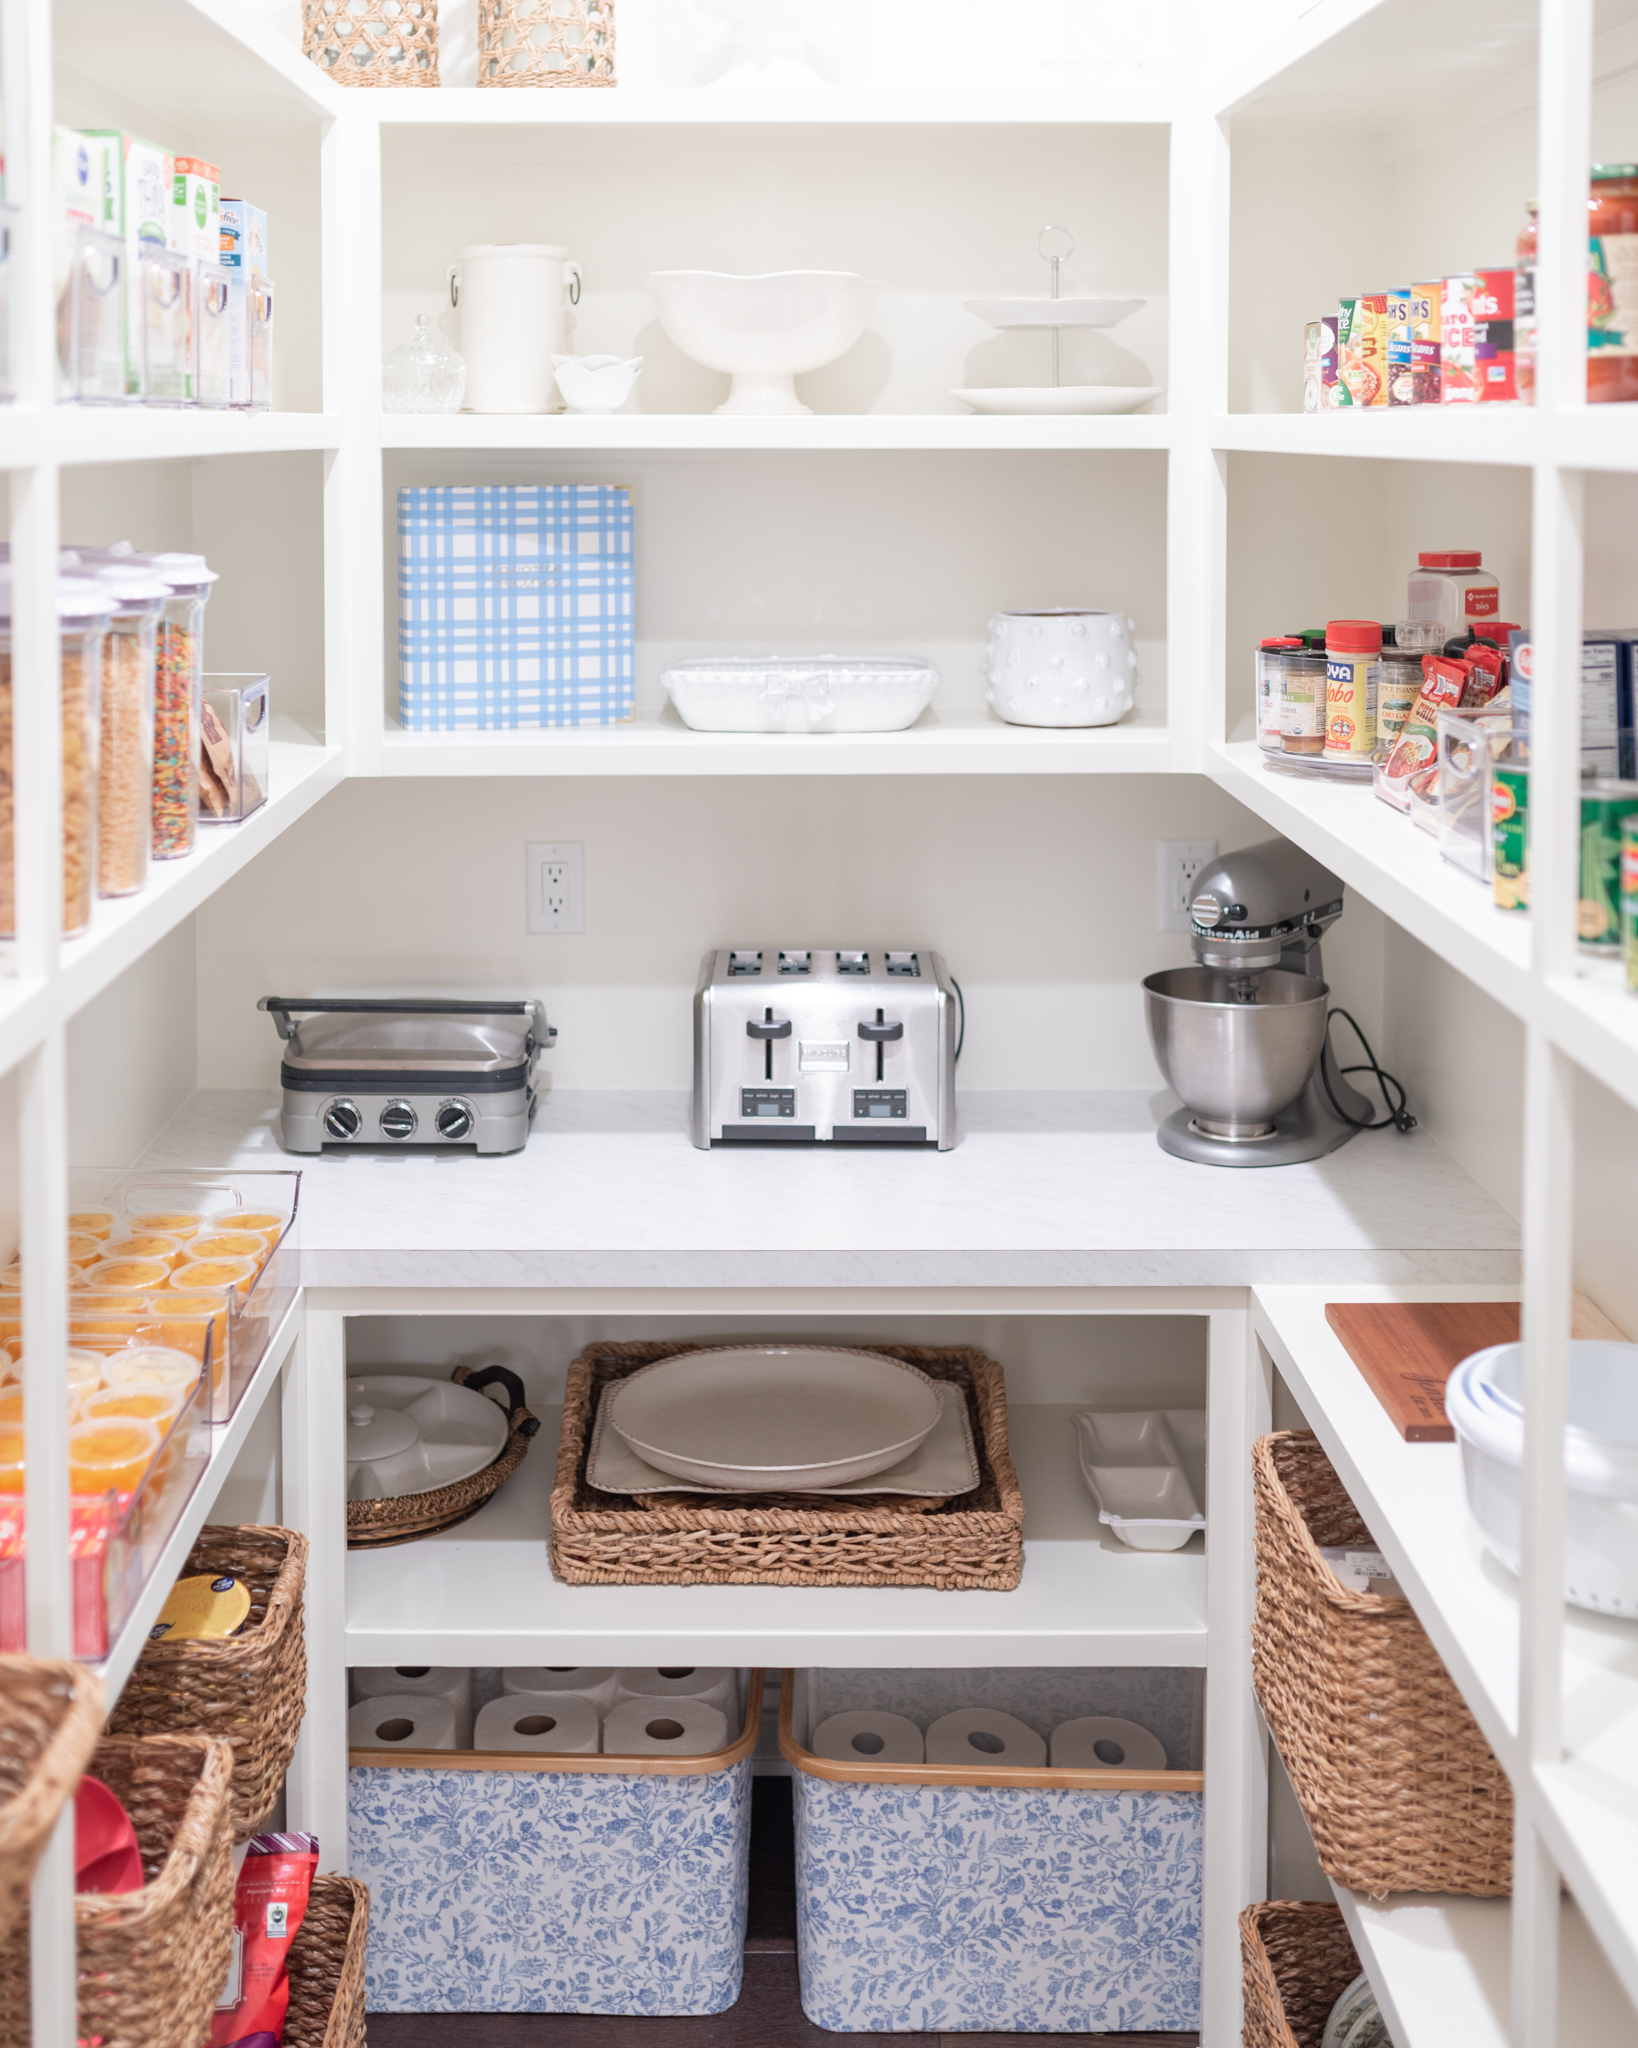 How To Organize Your Pantry in 5 Simple Steps